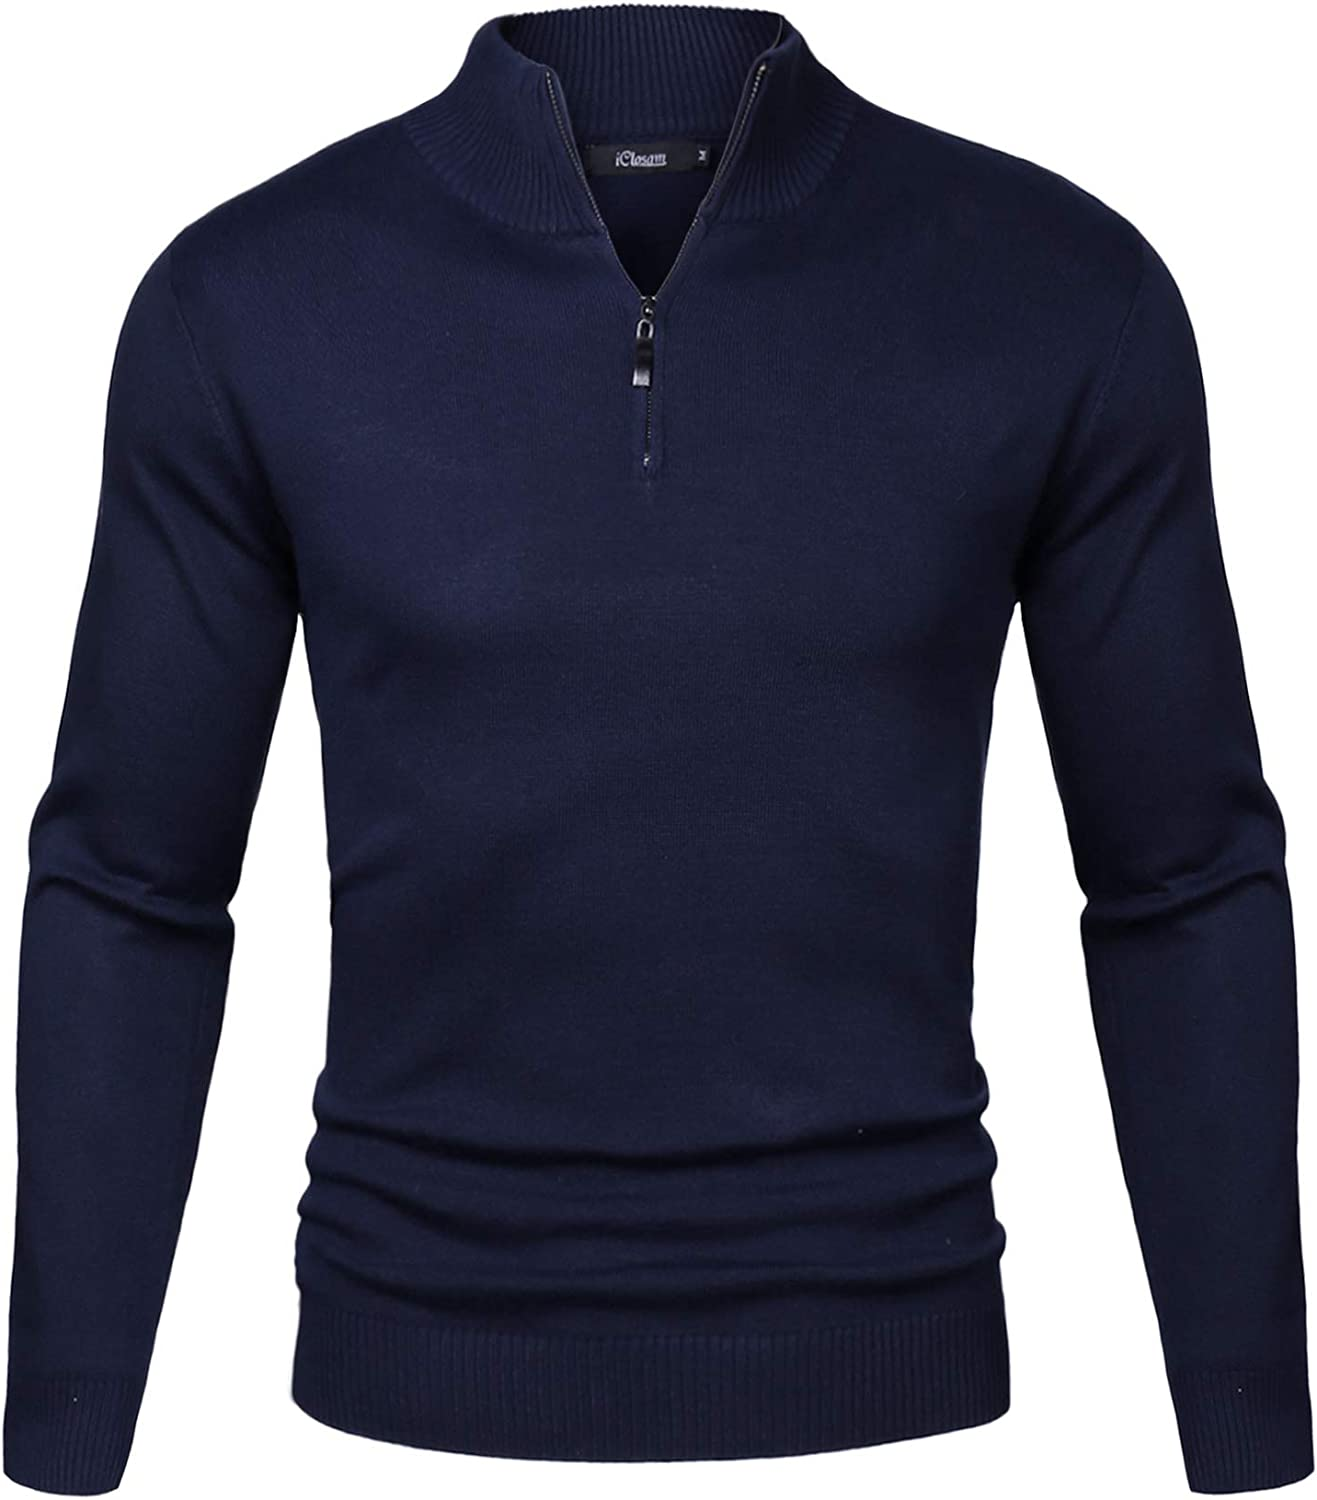 iClosam Mens Set-in Classic Sweater Pullover Jumper Knitwear